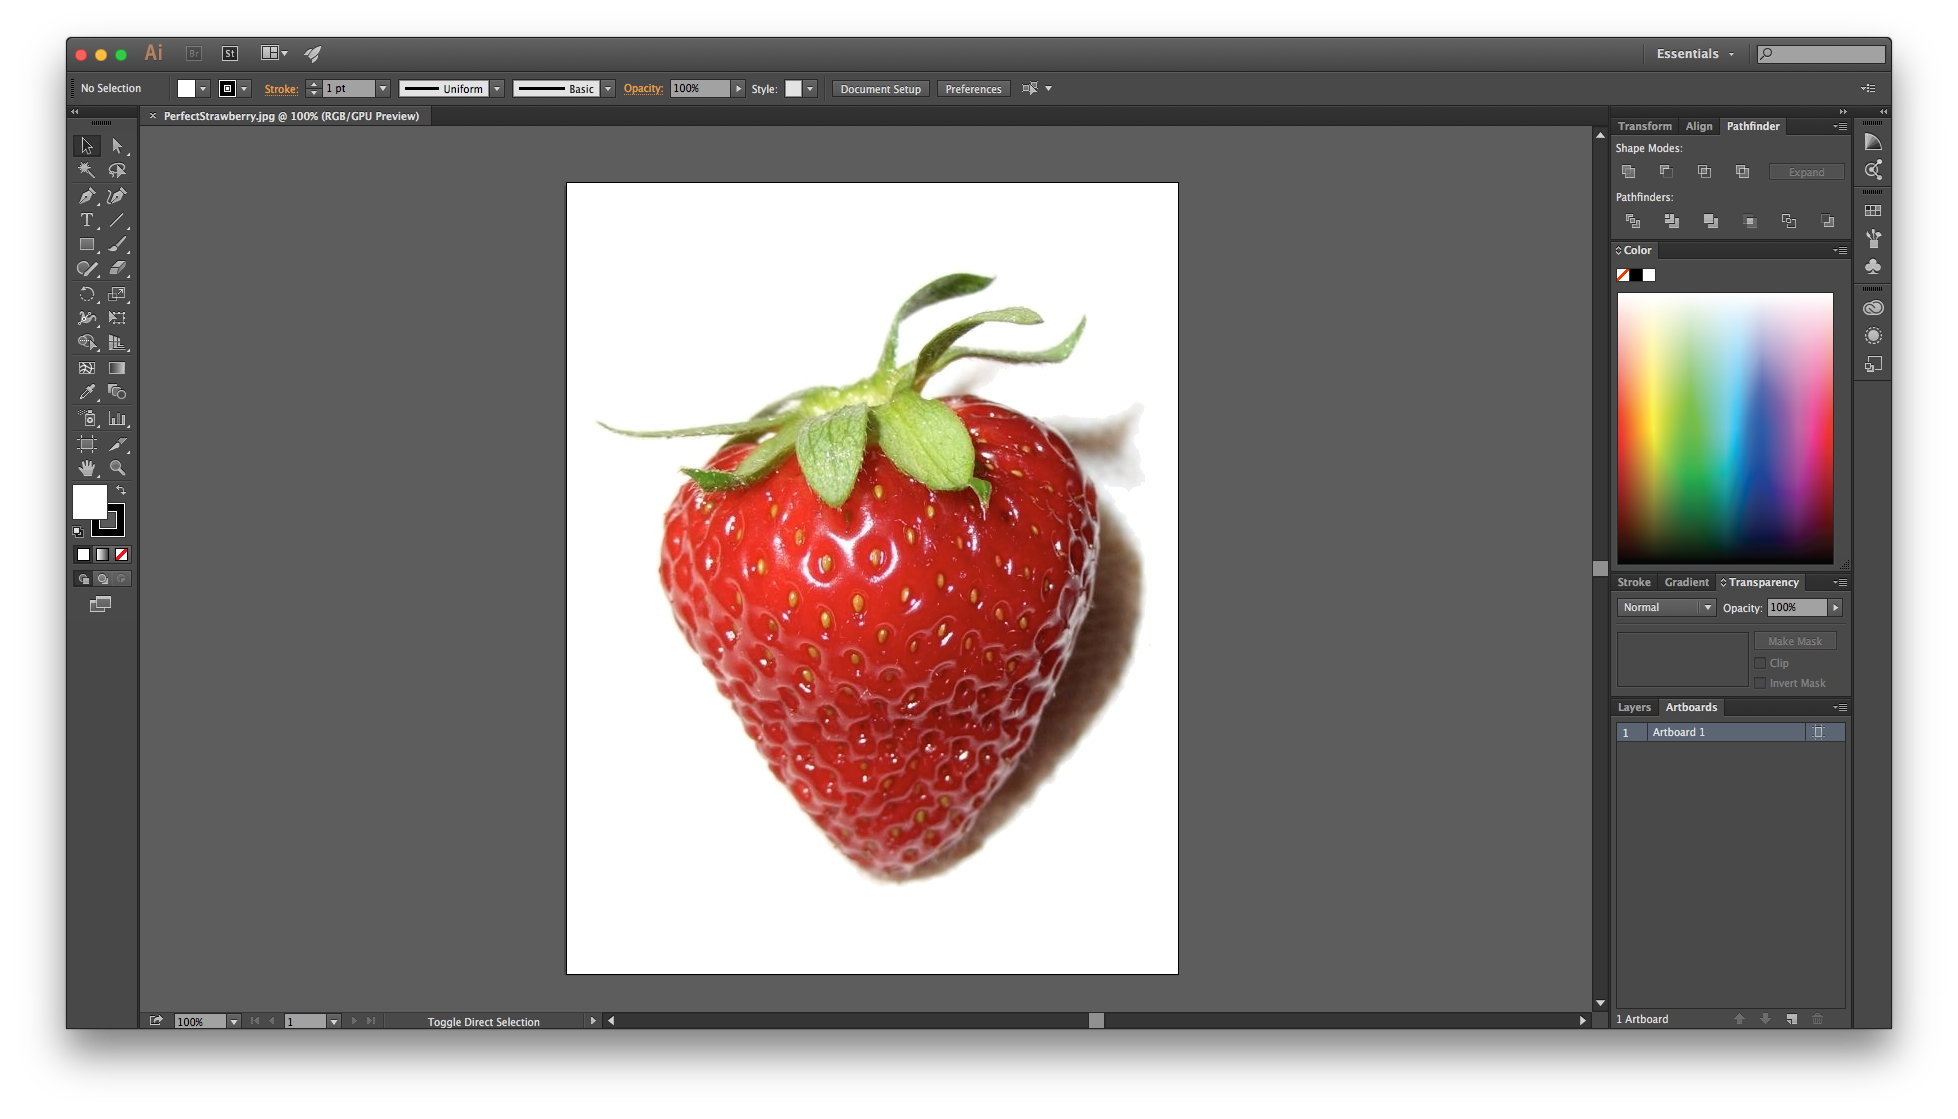 Strawberries clipart draw. Drawing in illustrator for